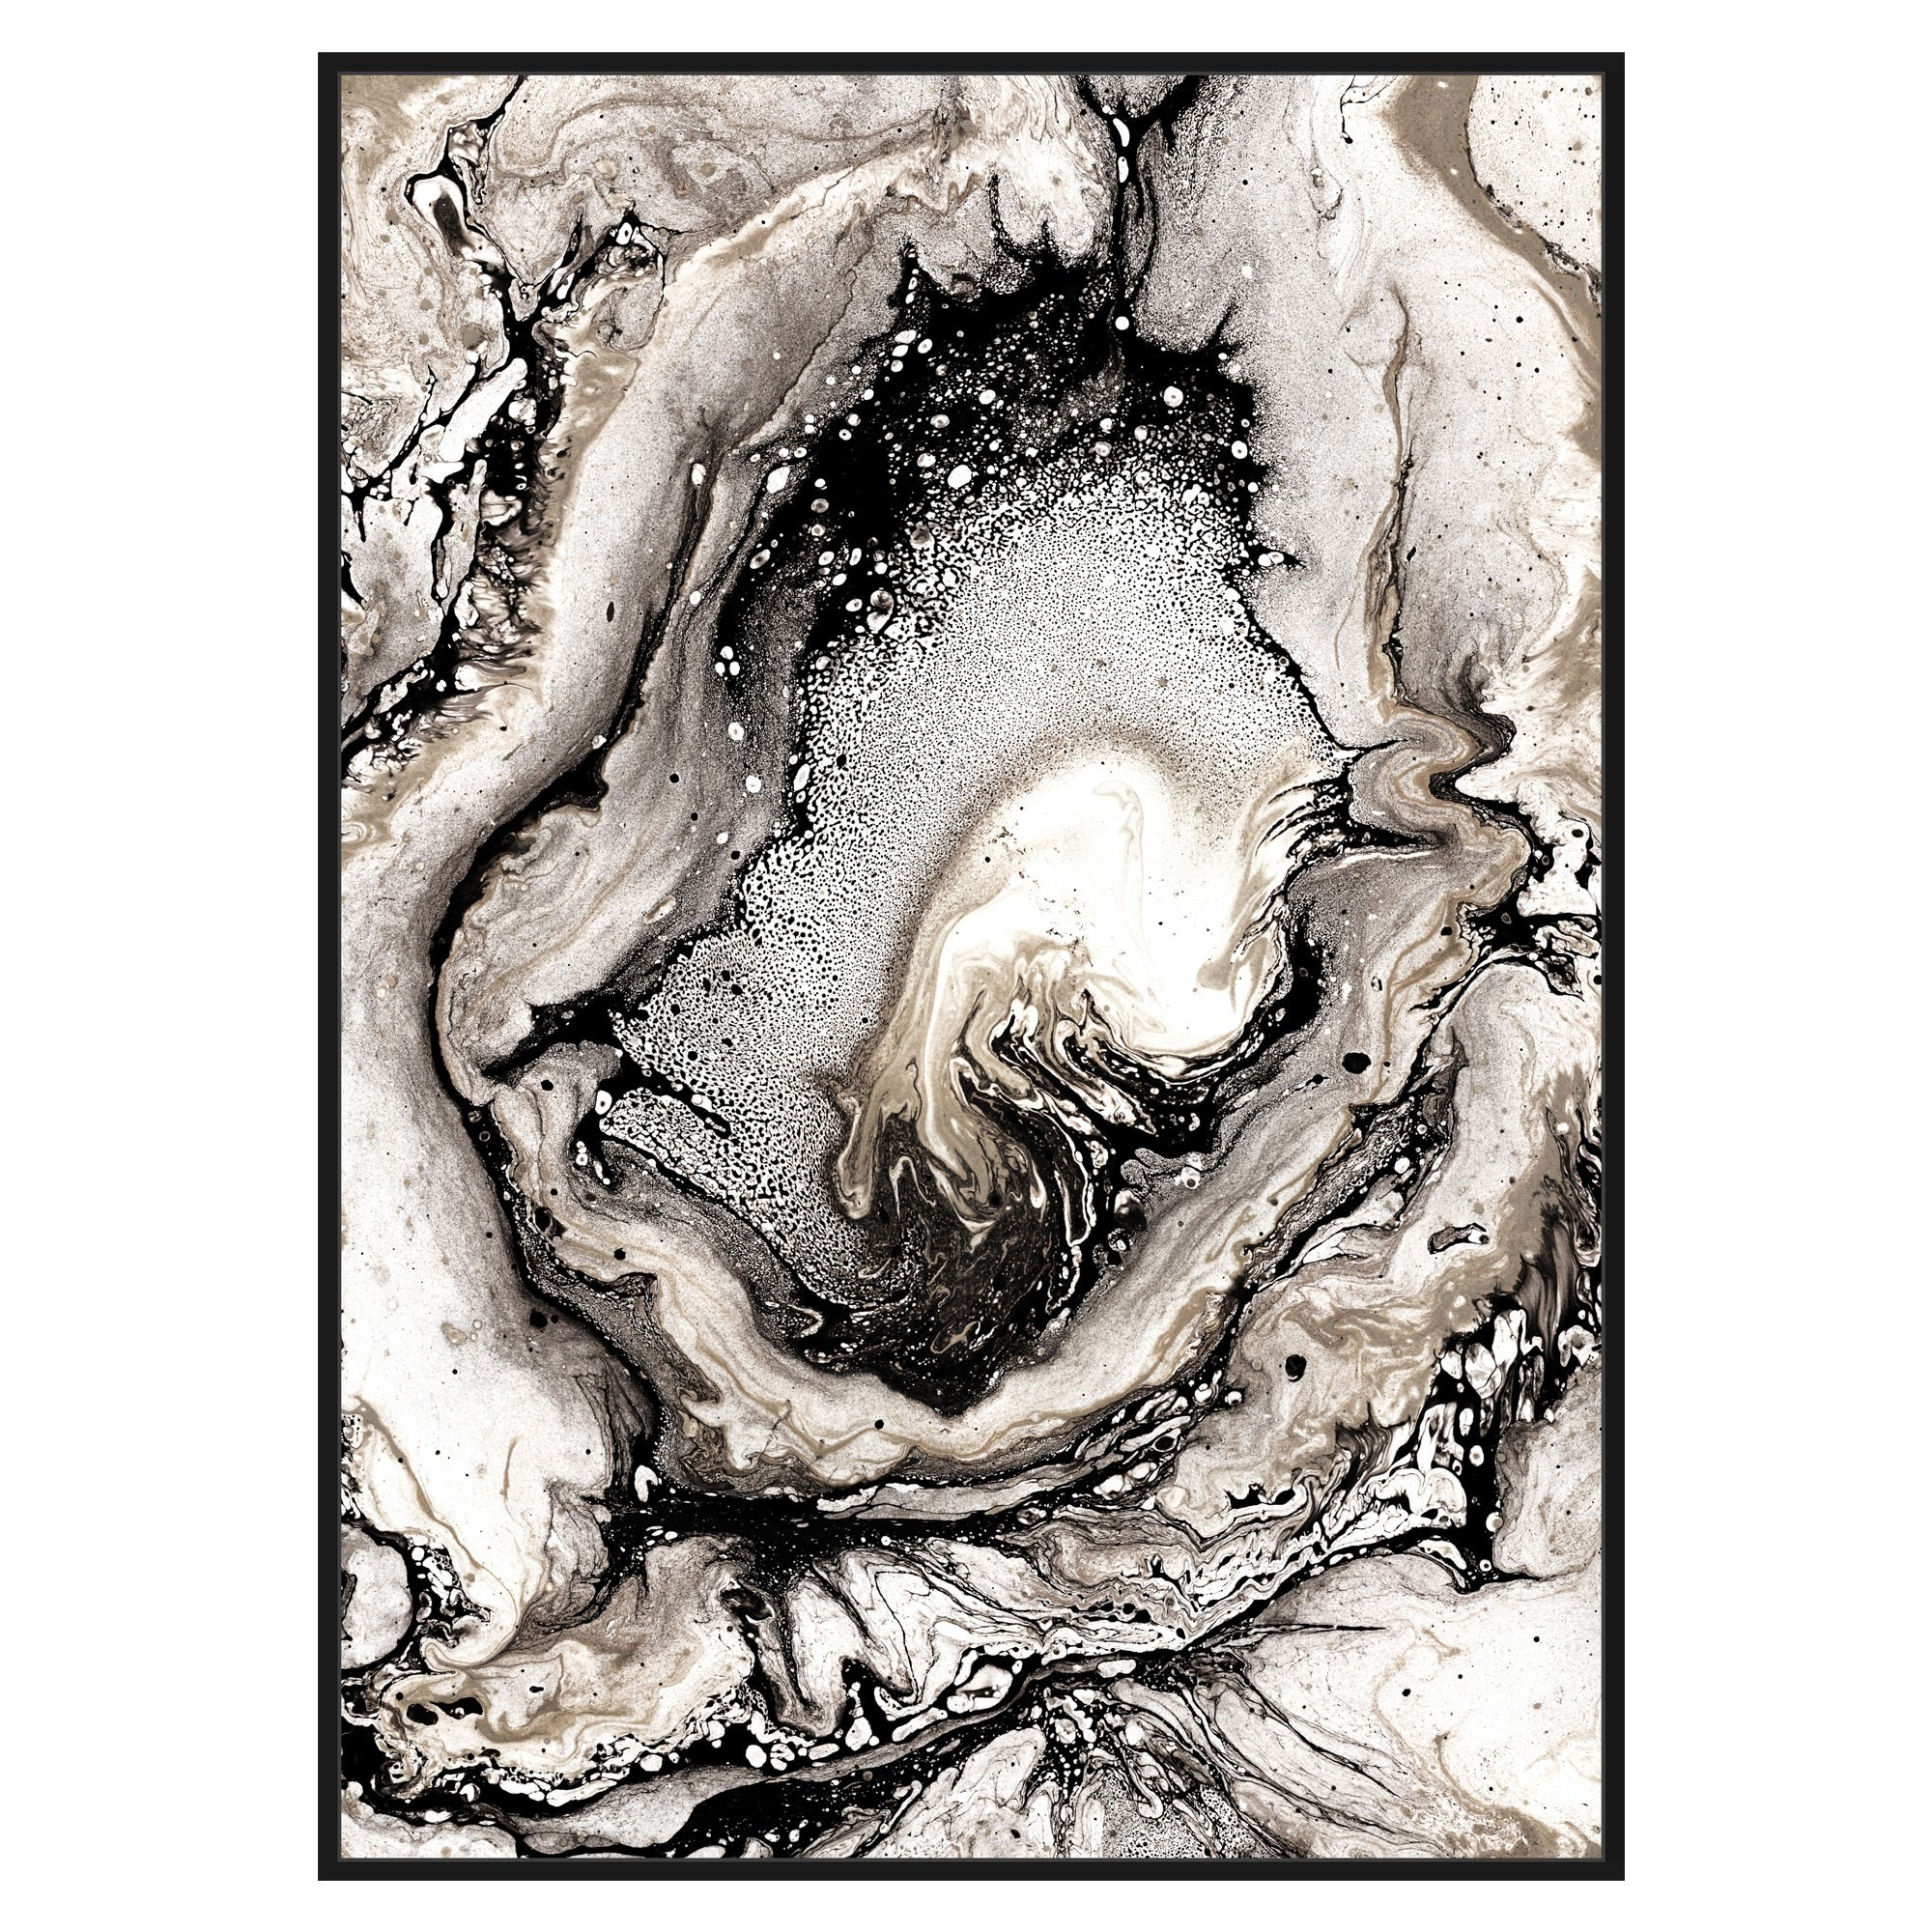 Veined Neutral Tone Marble Framed Canvas Wall Art Print, 120cm